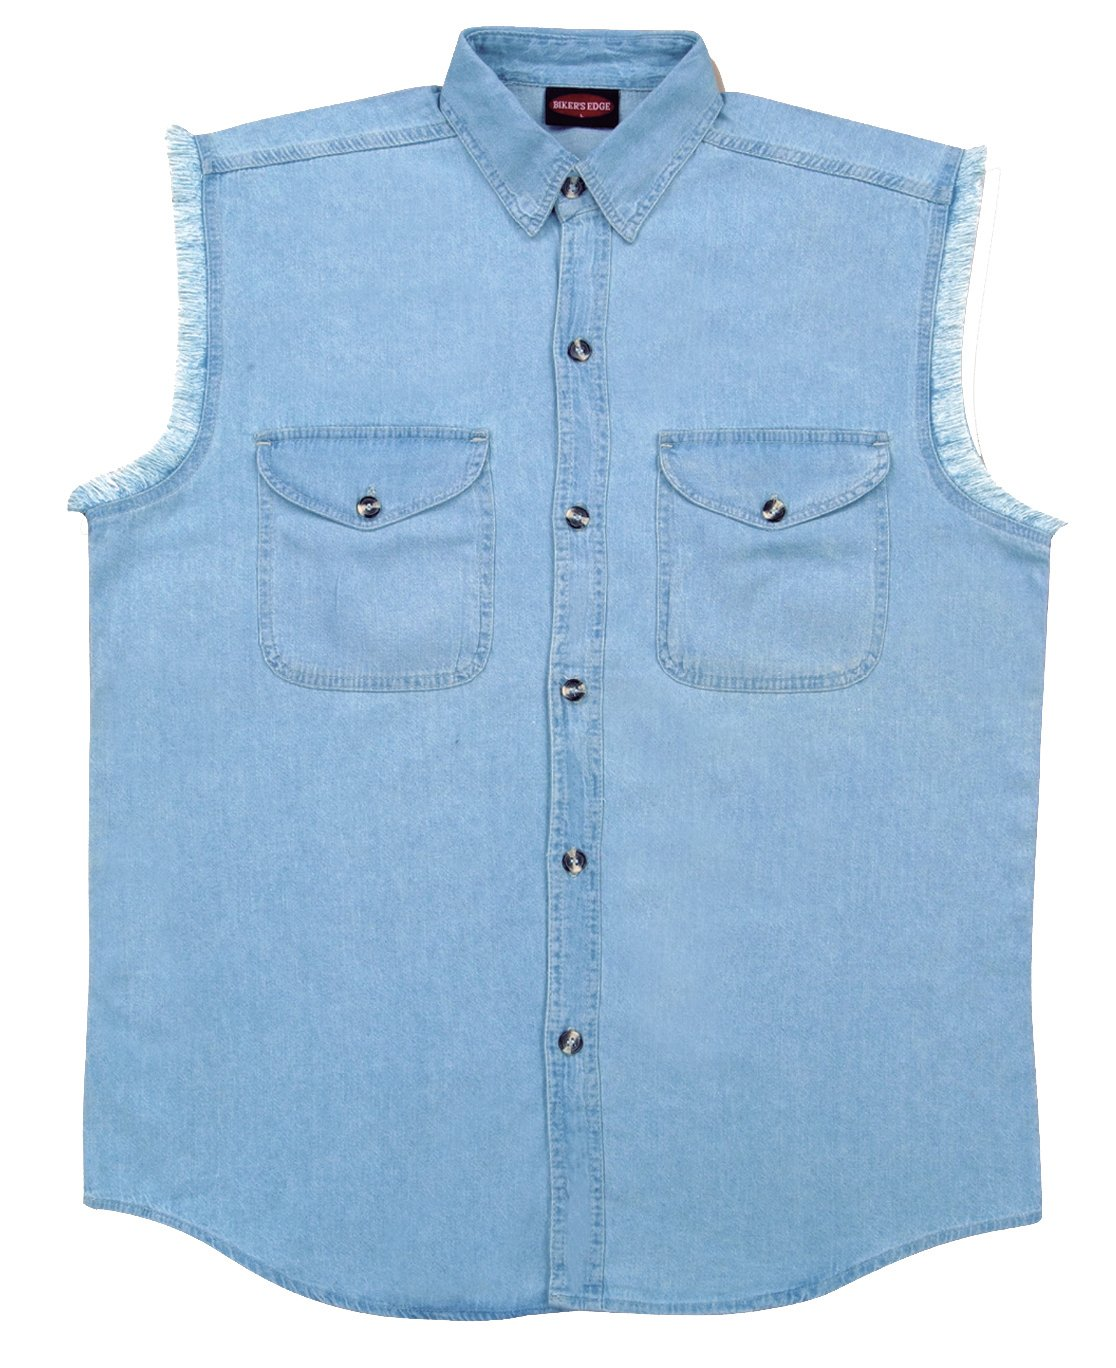 XX-Large Milwaukee Performance DM1001-LBLU-2X Mens Denim Sleeveless Shirt Light Blue